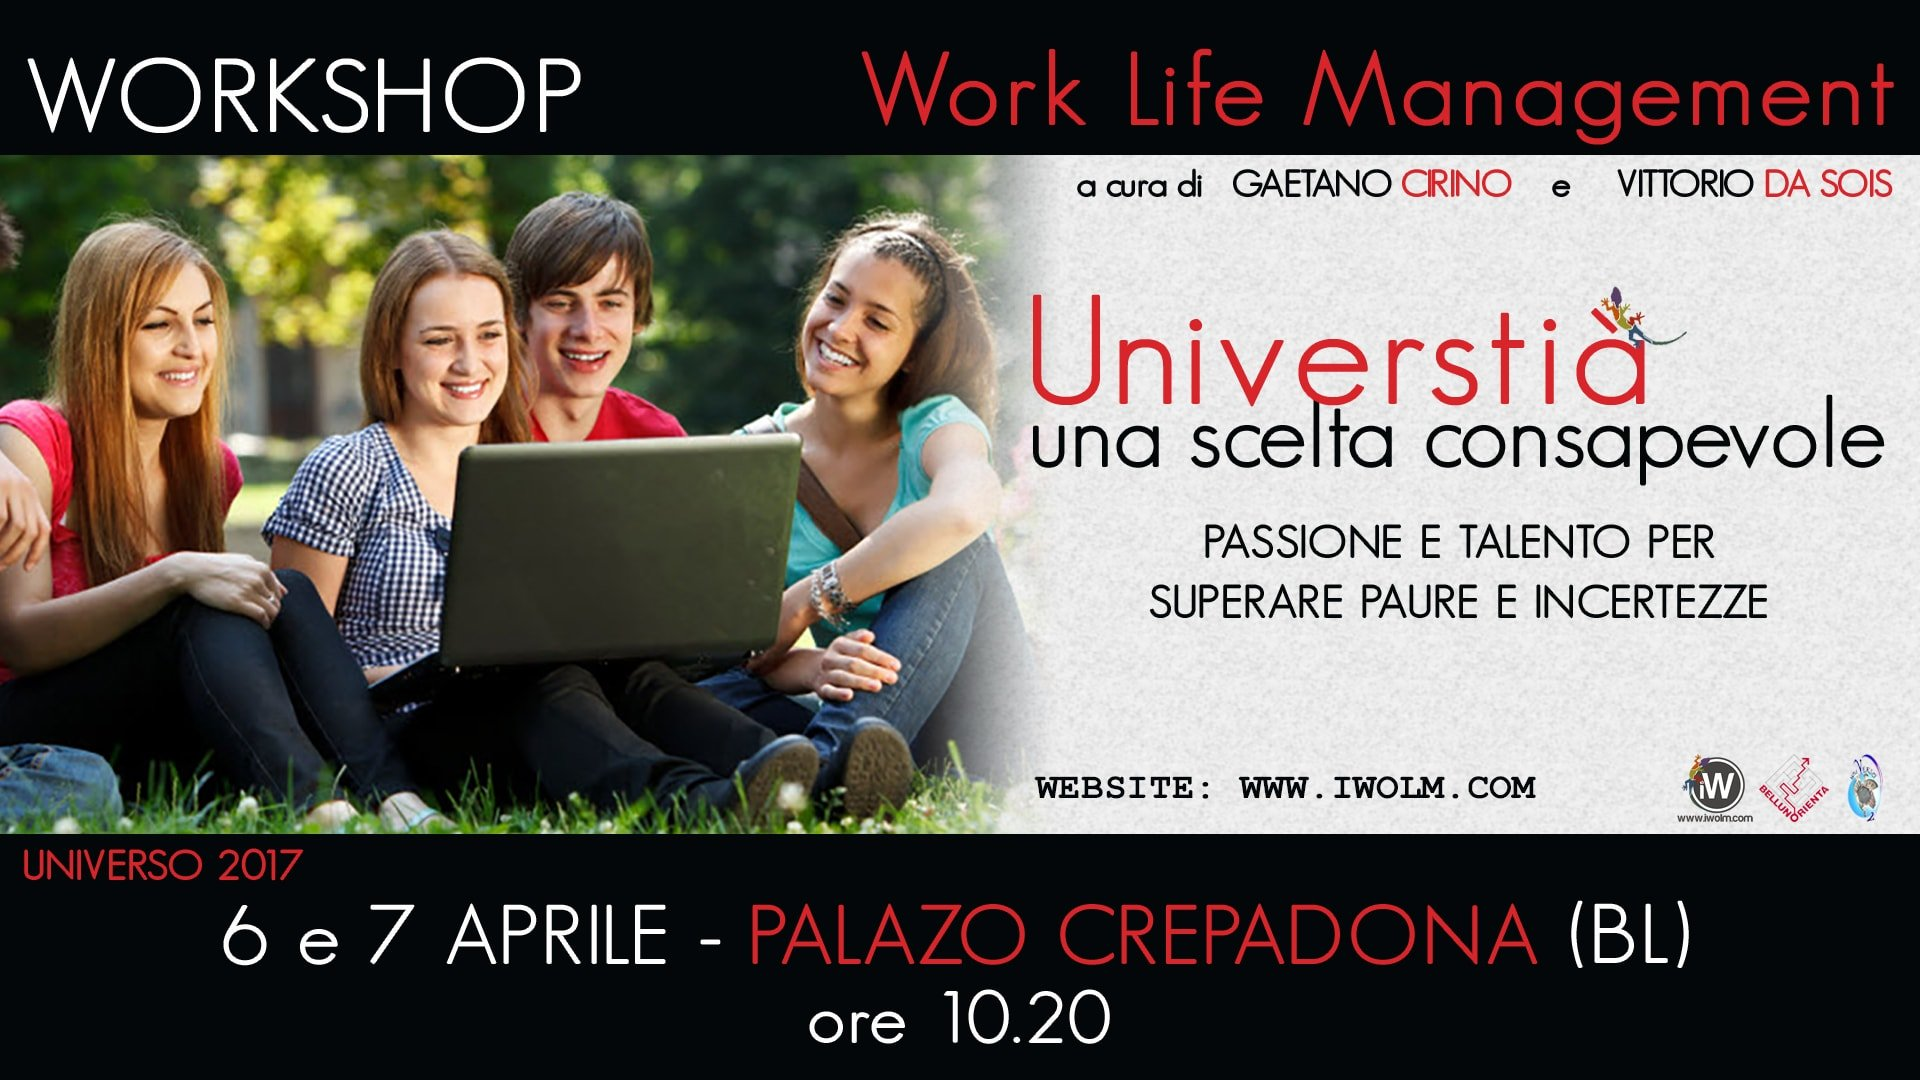 Workshop Universo 2017